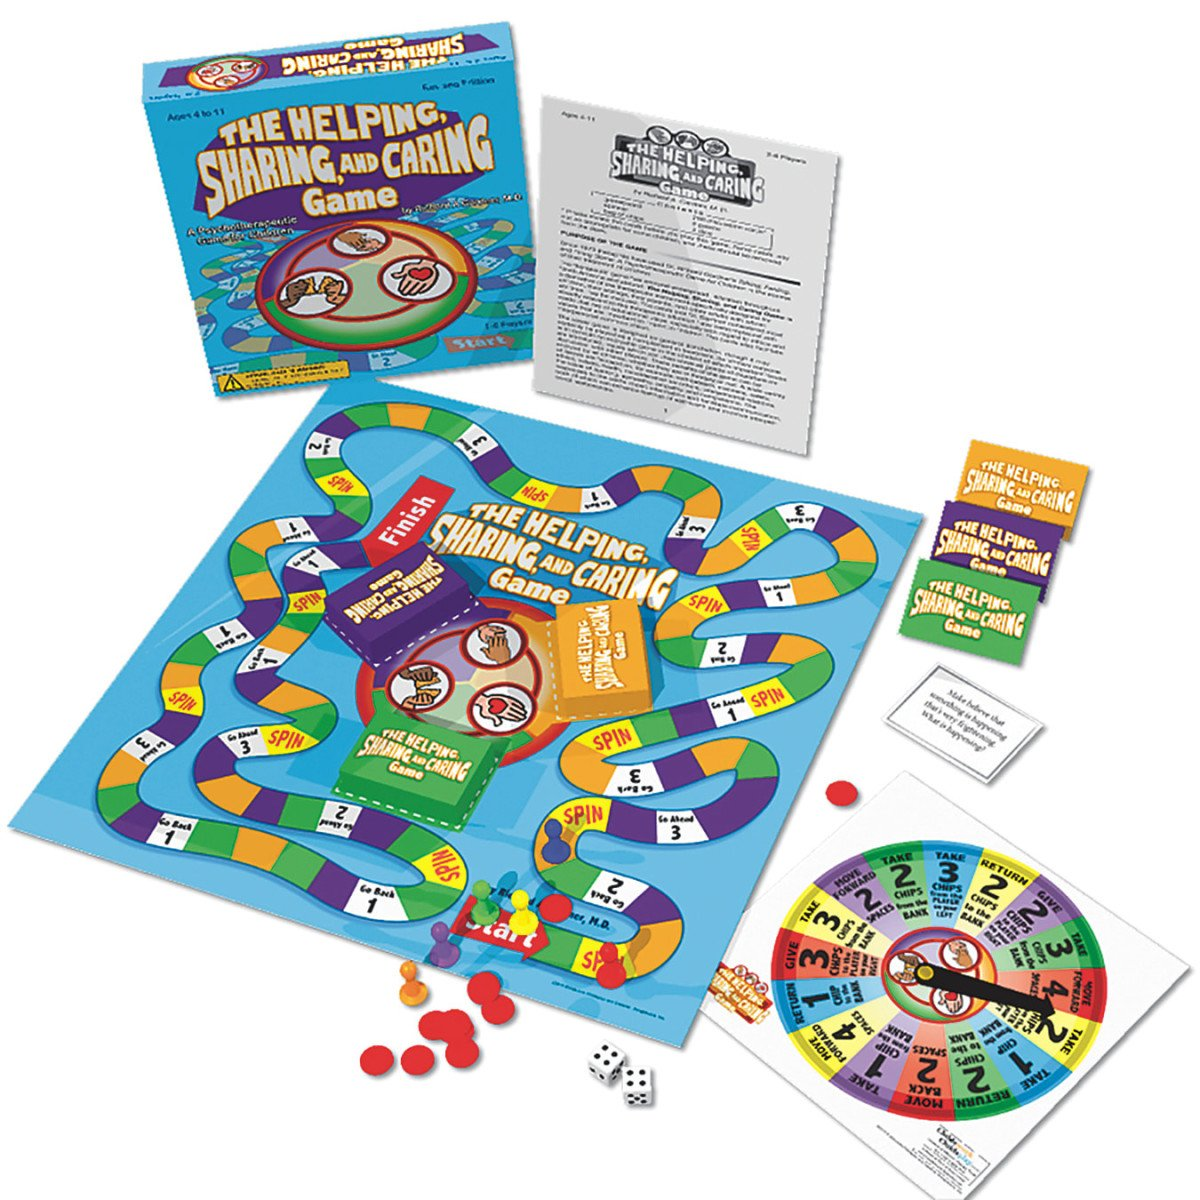 The Helping, Caring & Sharing Board Game